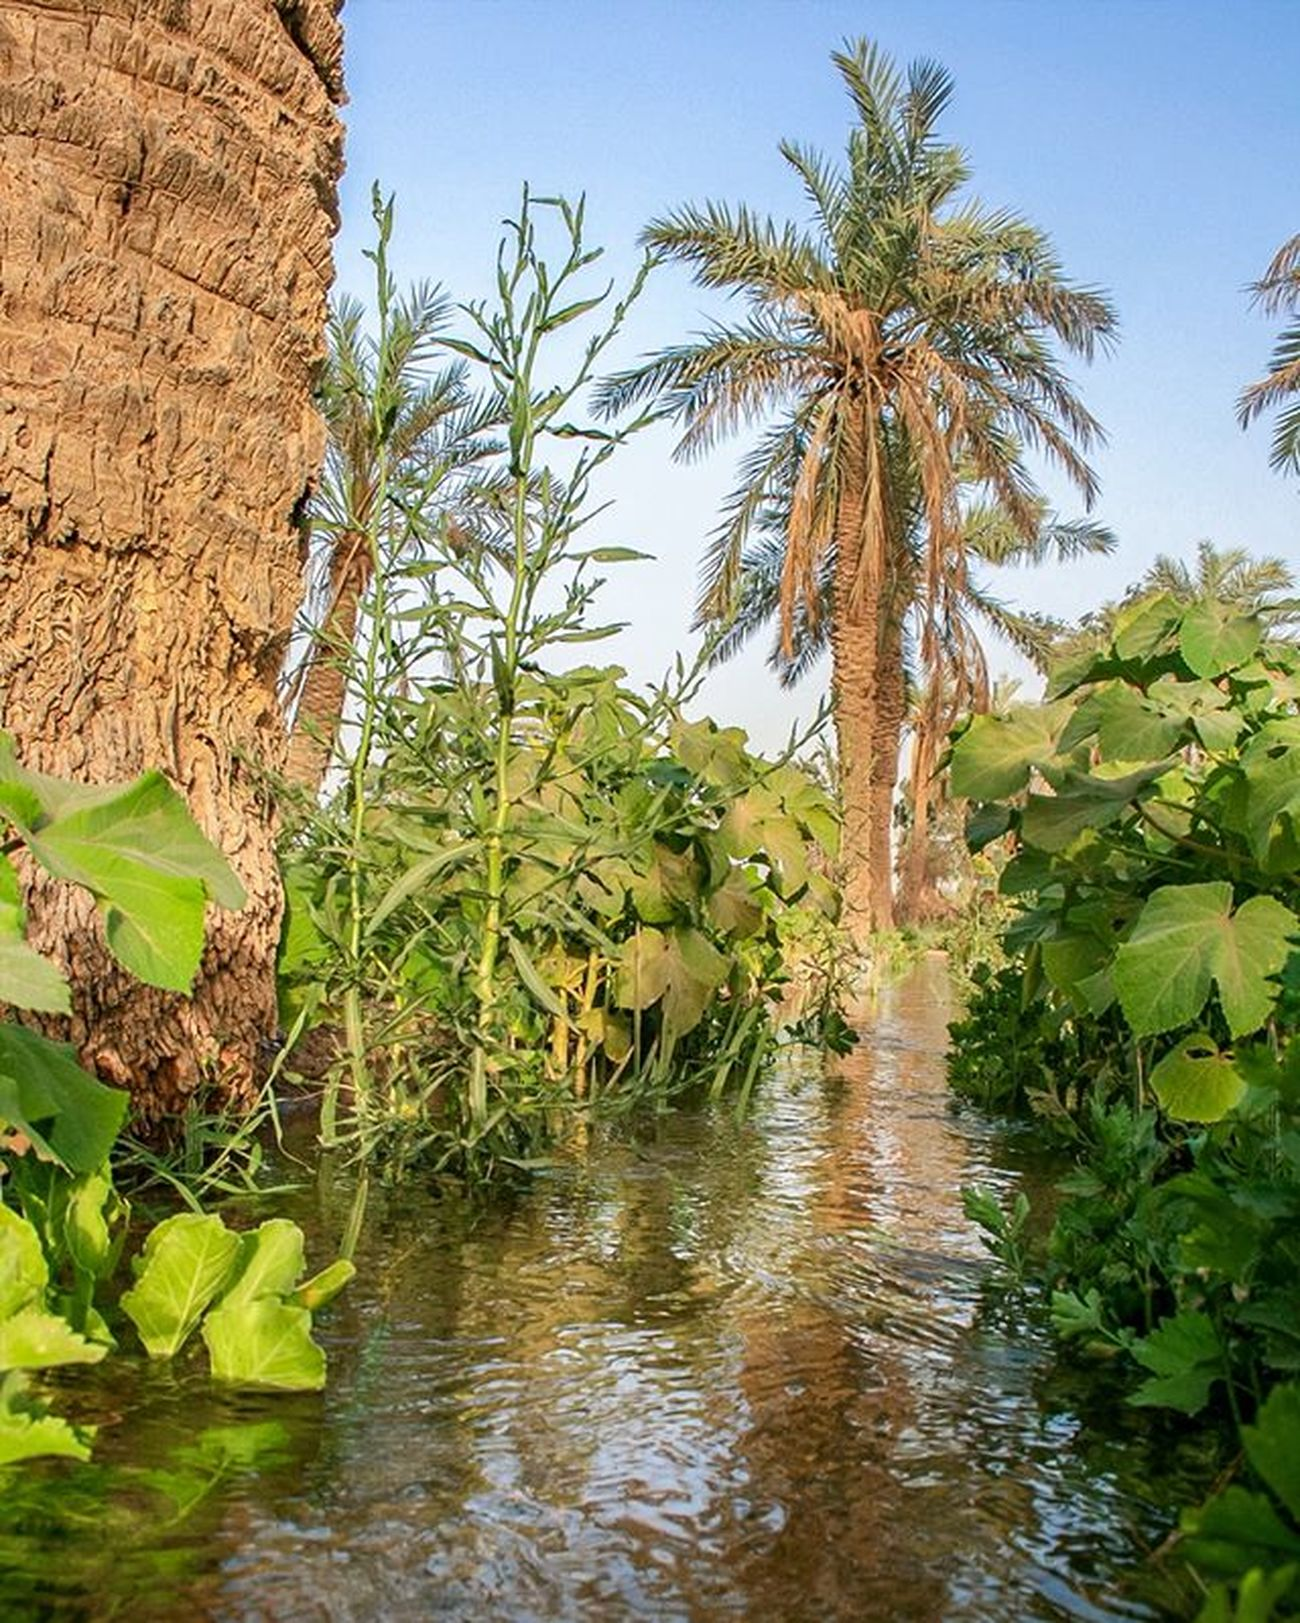 Canon 400d Canon400d Tree Irrigating Water Plants Palm Datepals Basra Iraq Shattalarab Green